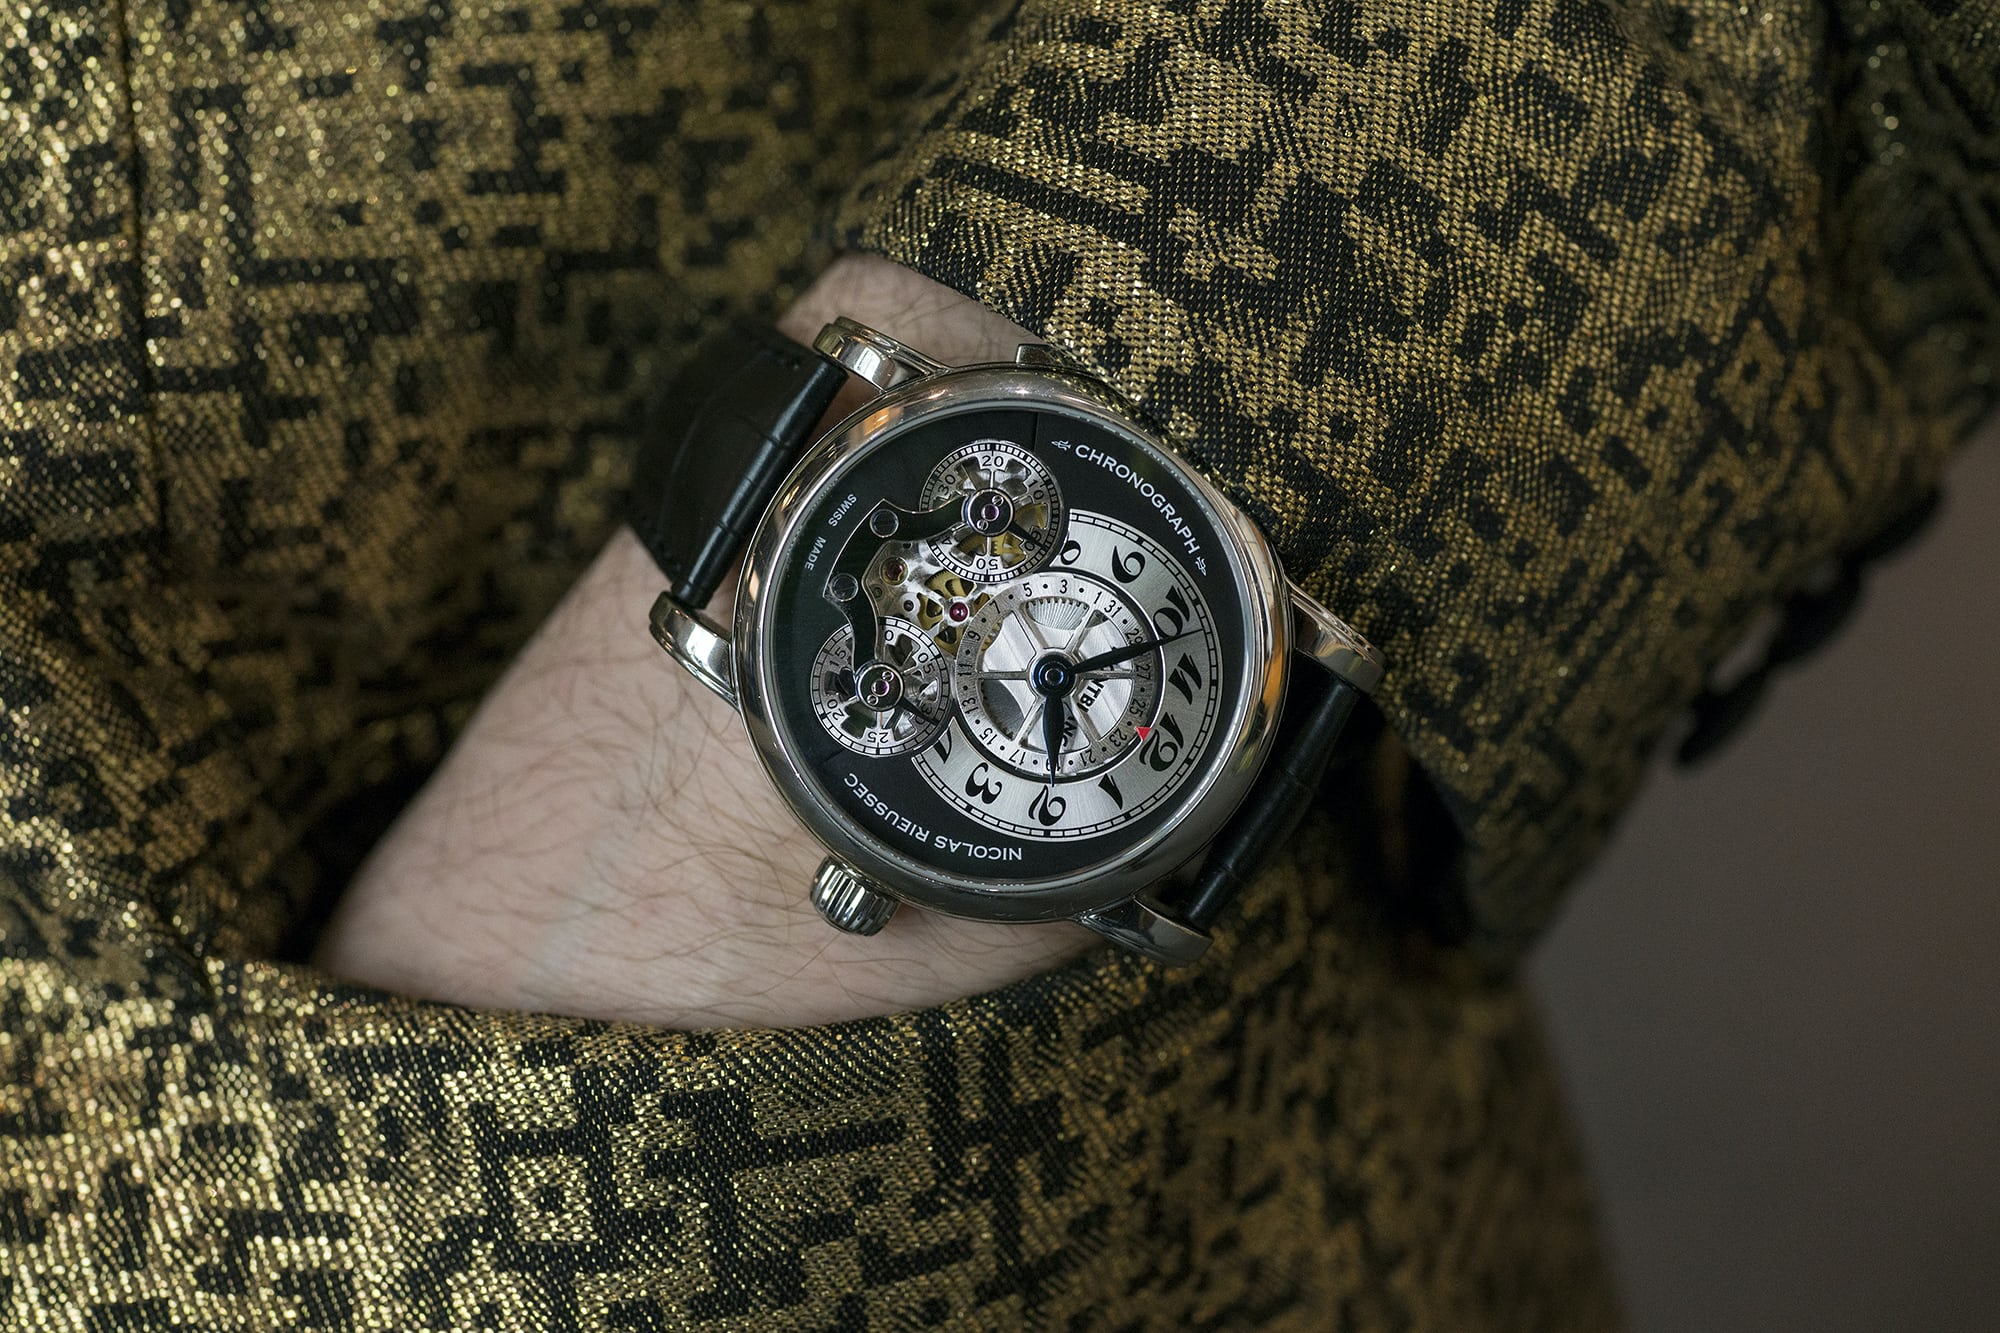 Photo Report: The Fashion And Watches Of Baselworld 2018 Photo Report: The Fashion And Watches Of Baselworld 2018 DSC00970 copy